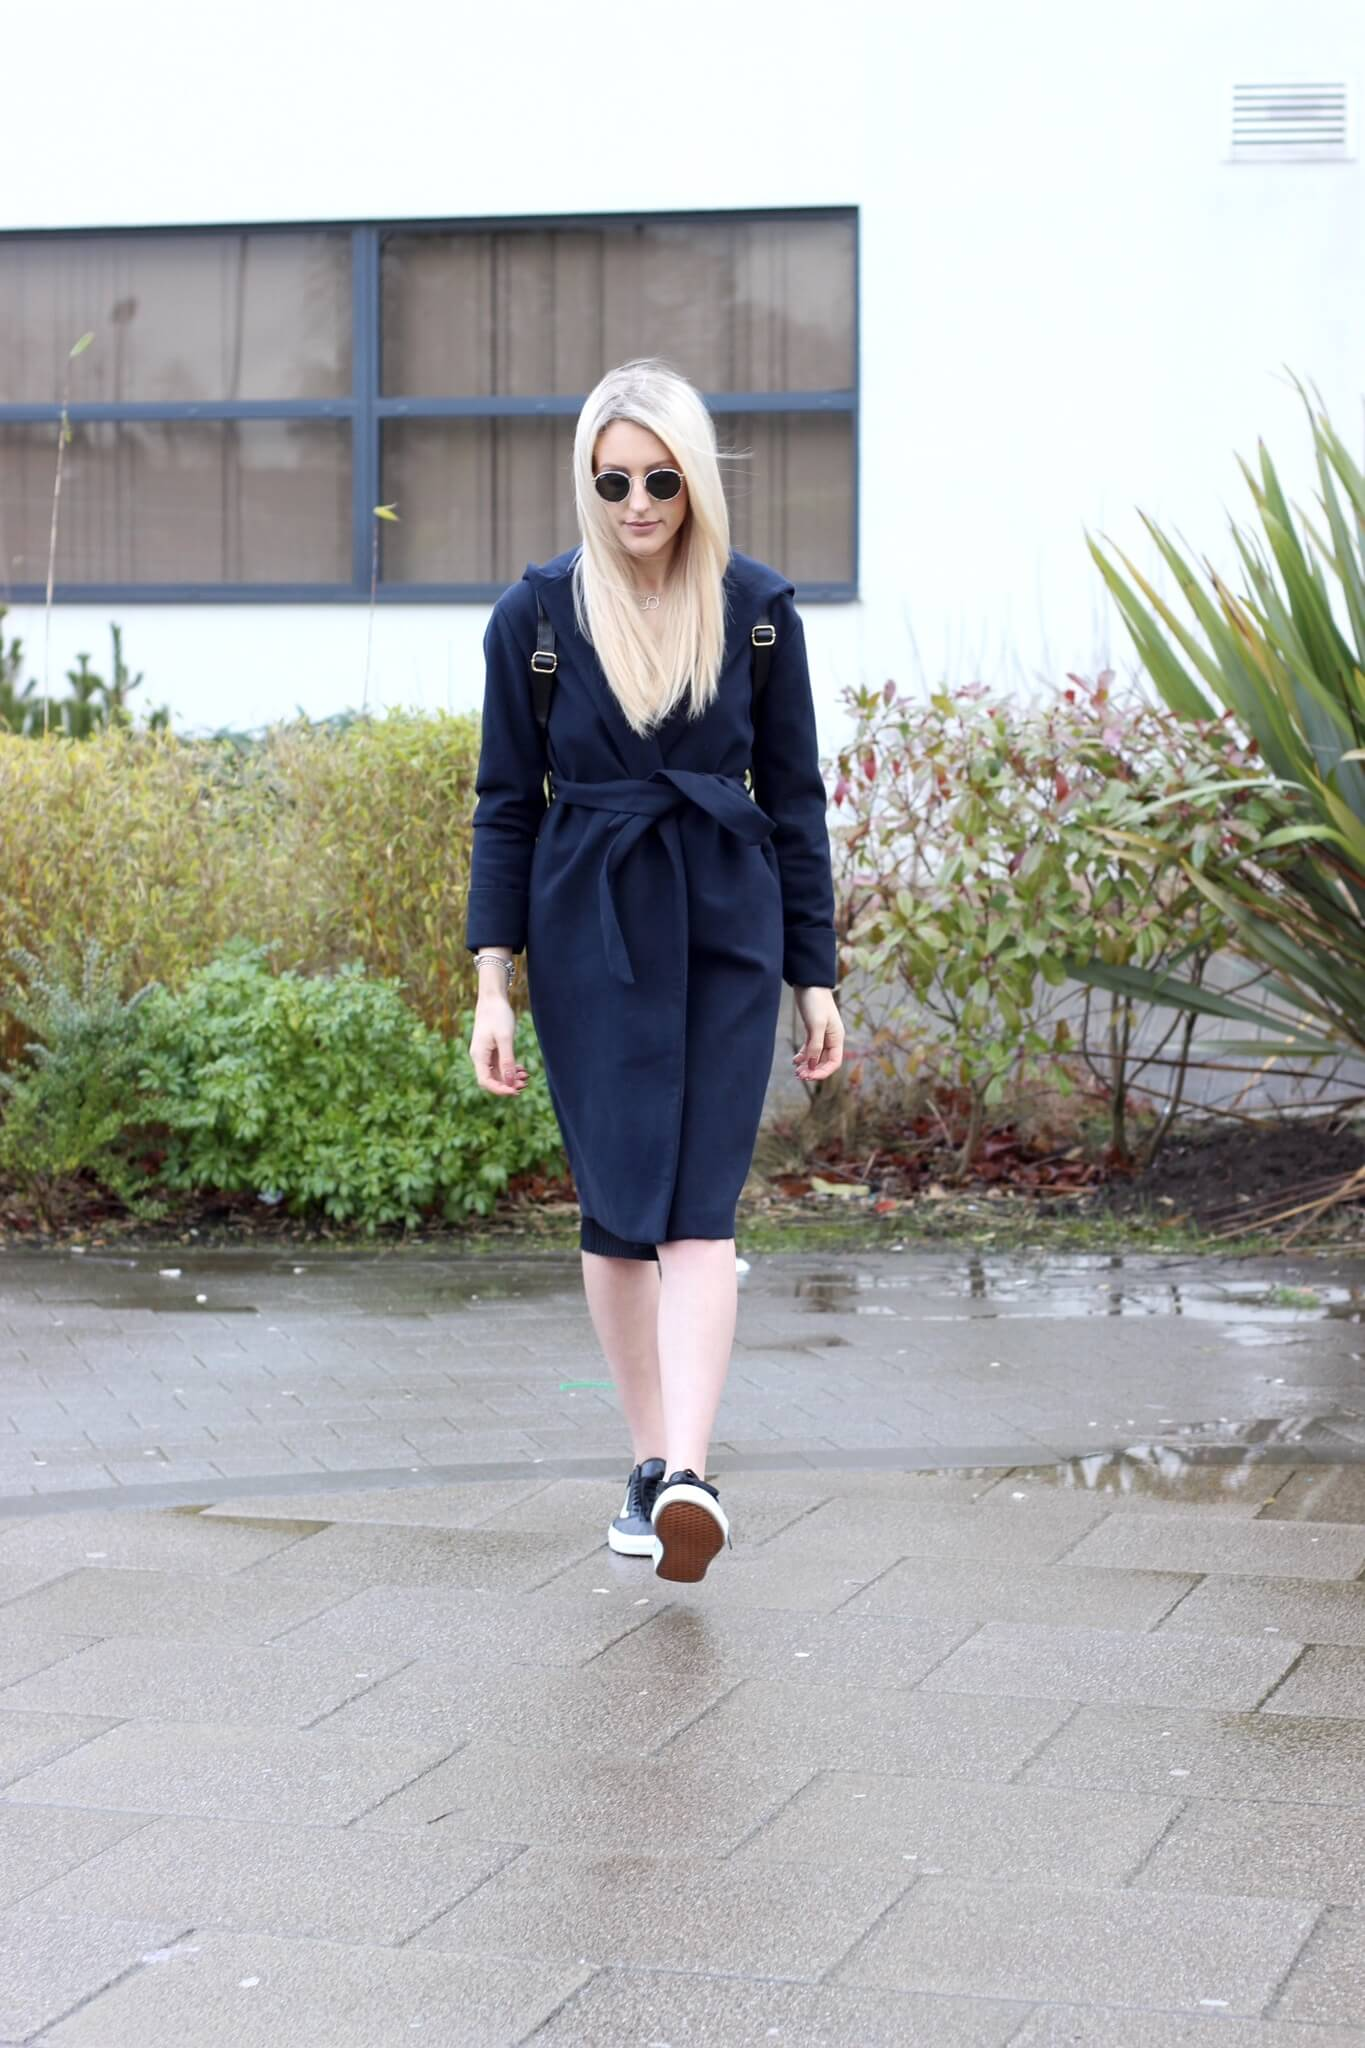 Top uk fashion blogger Charlotte Lewis